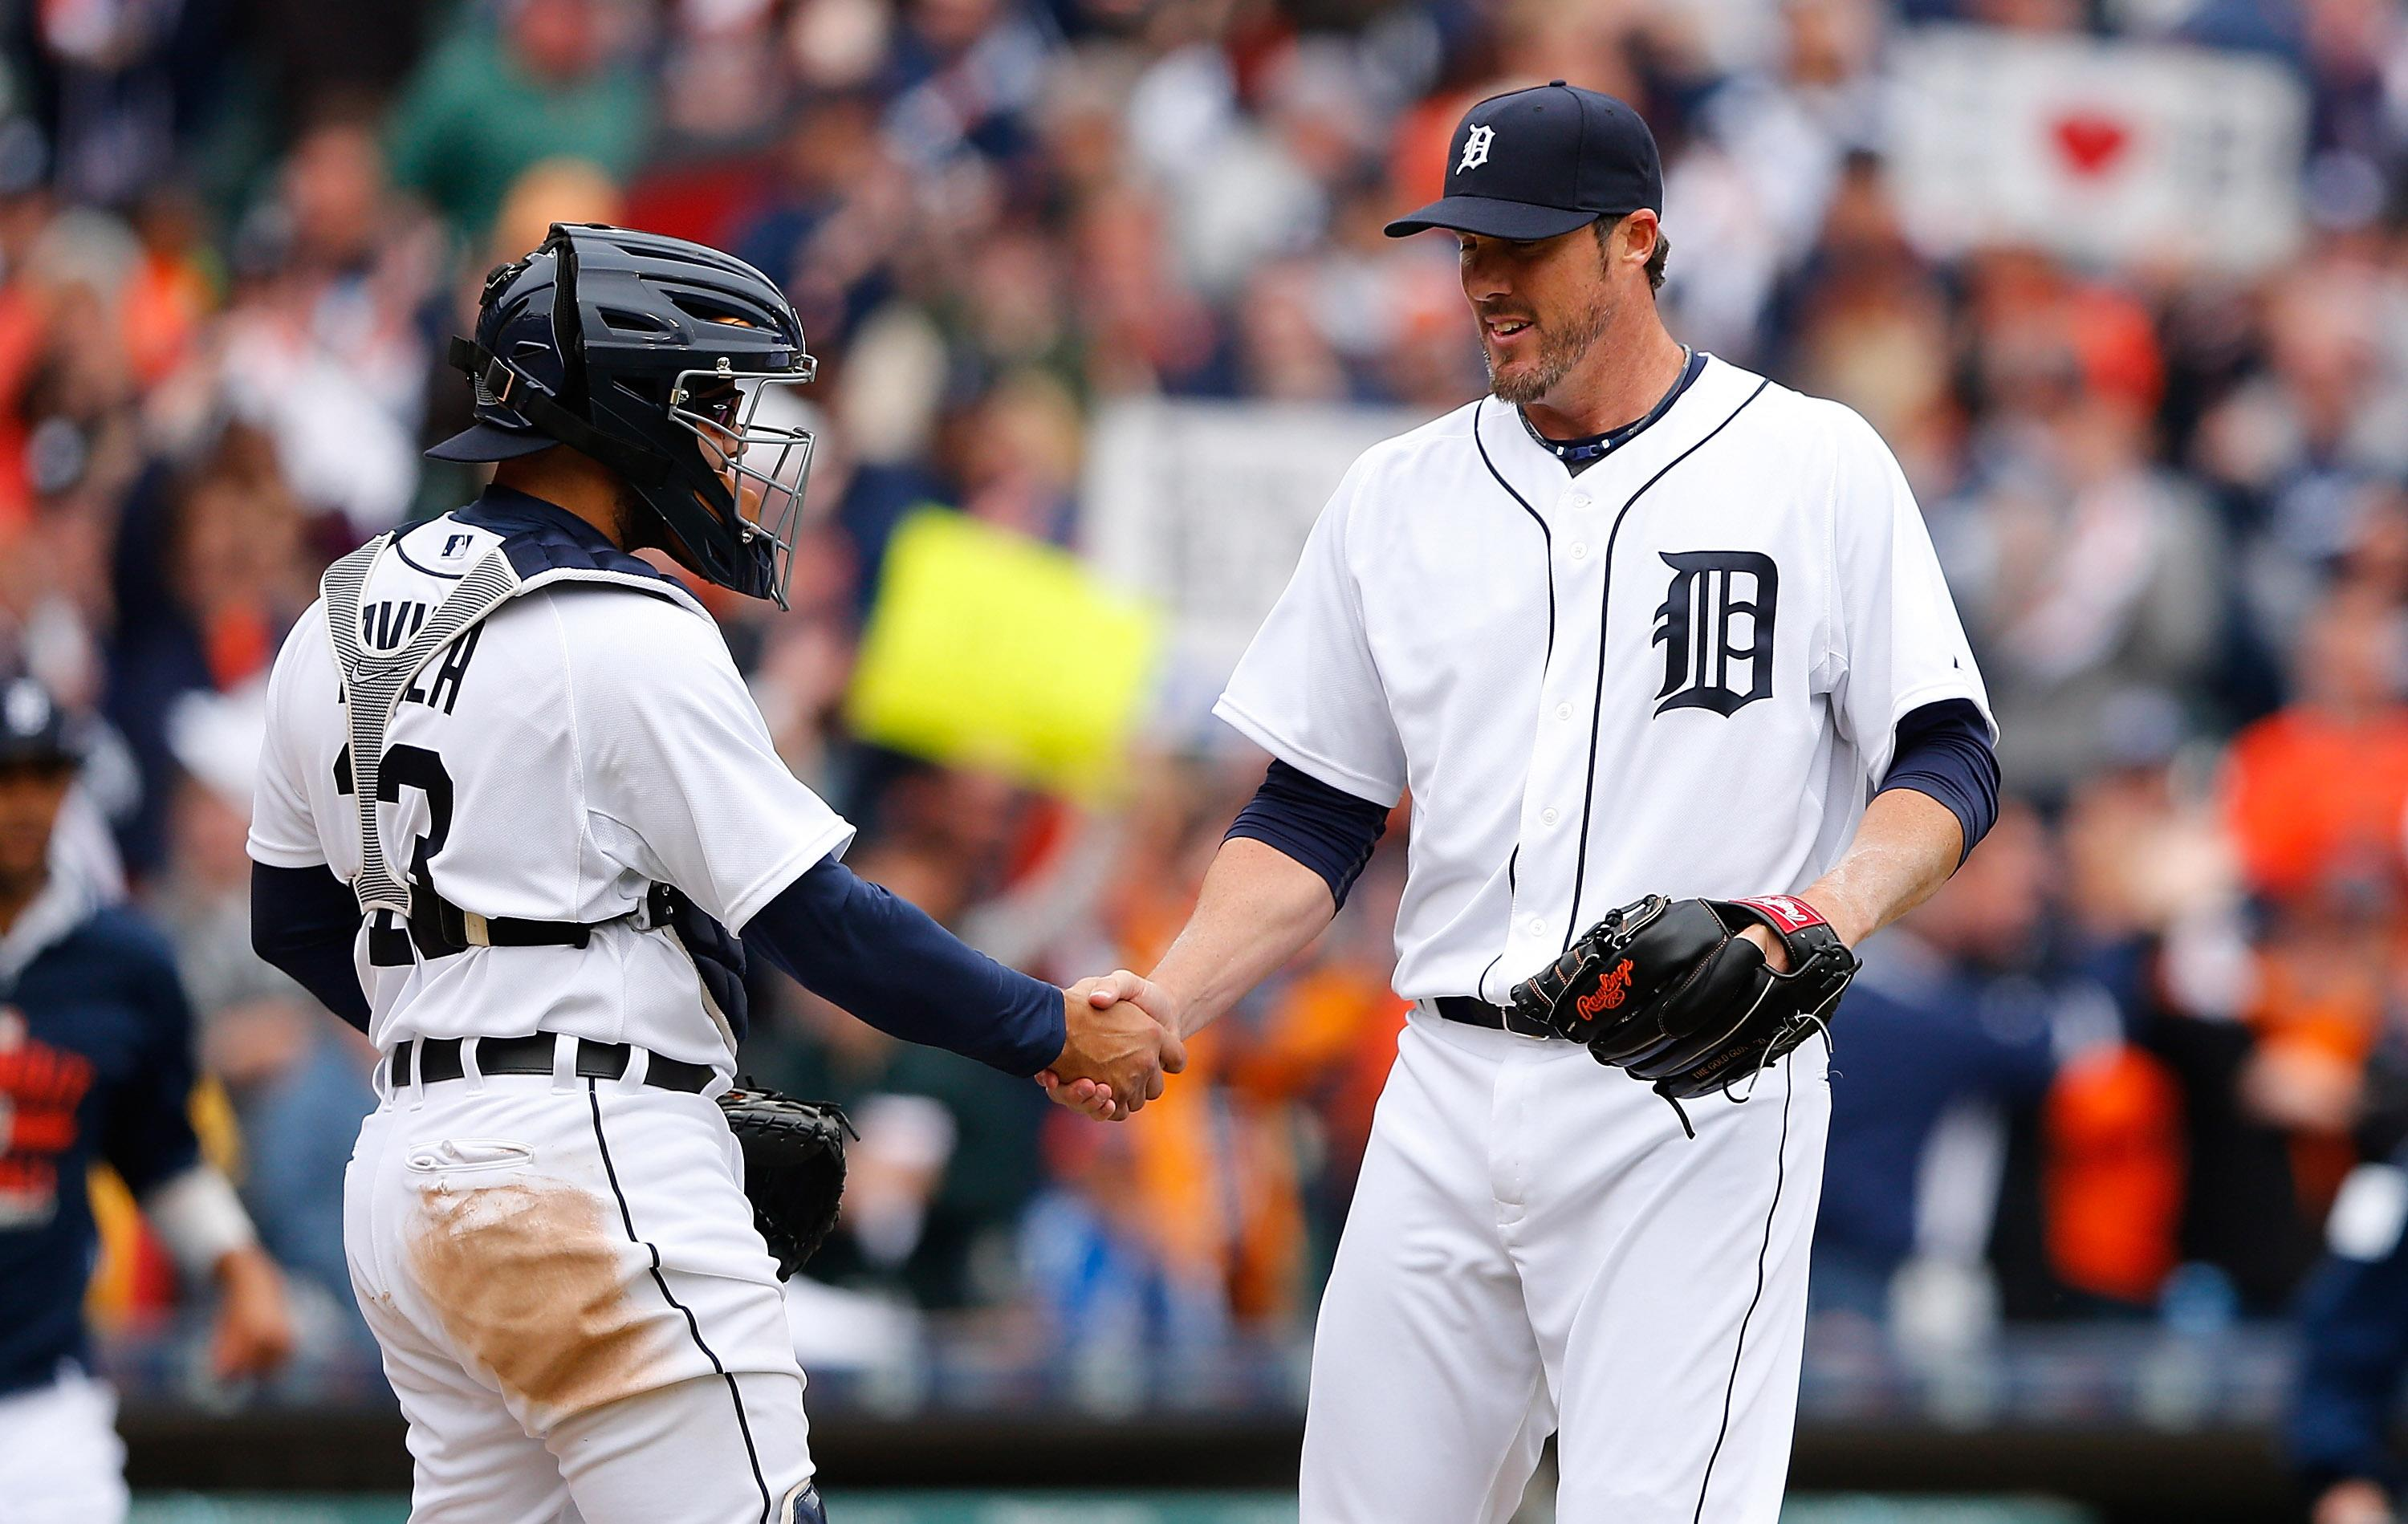 Baseball - Tigers lose closing pitcher Nathan for season